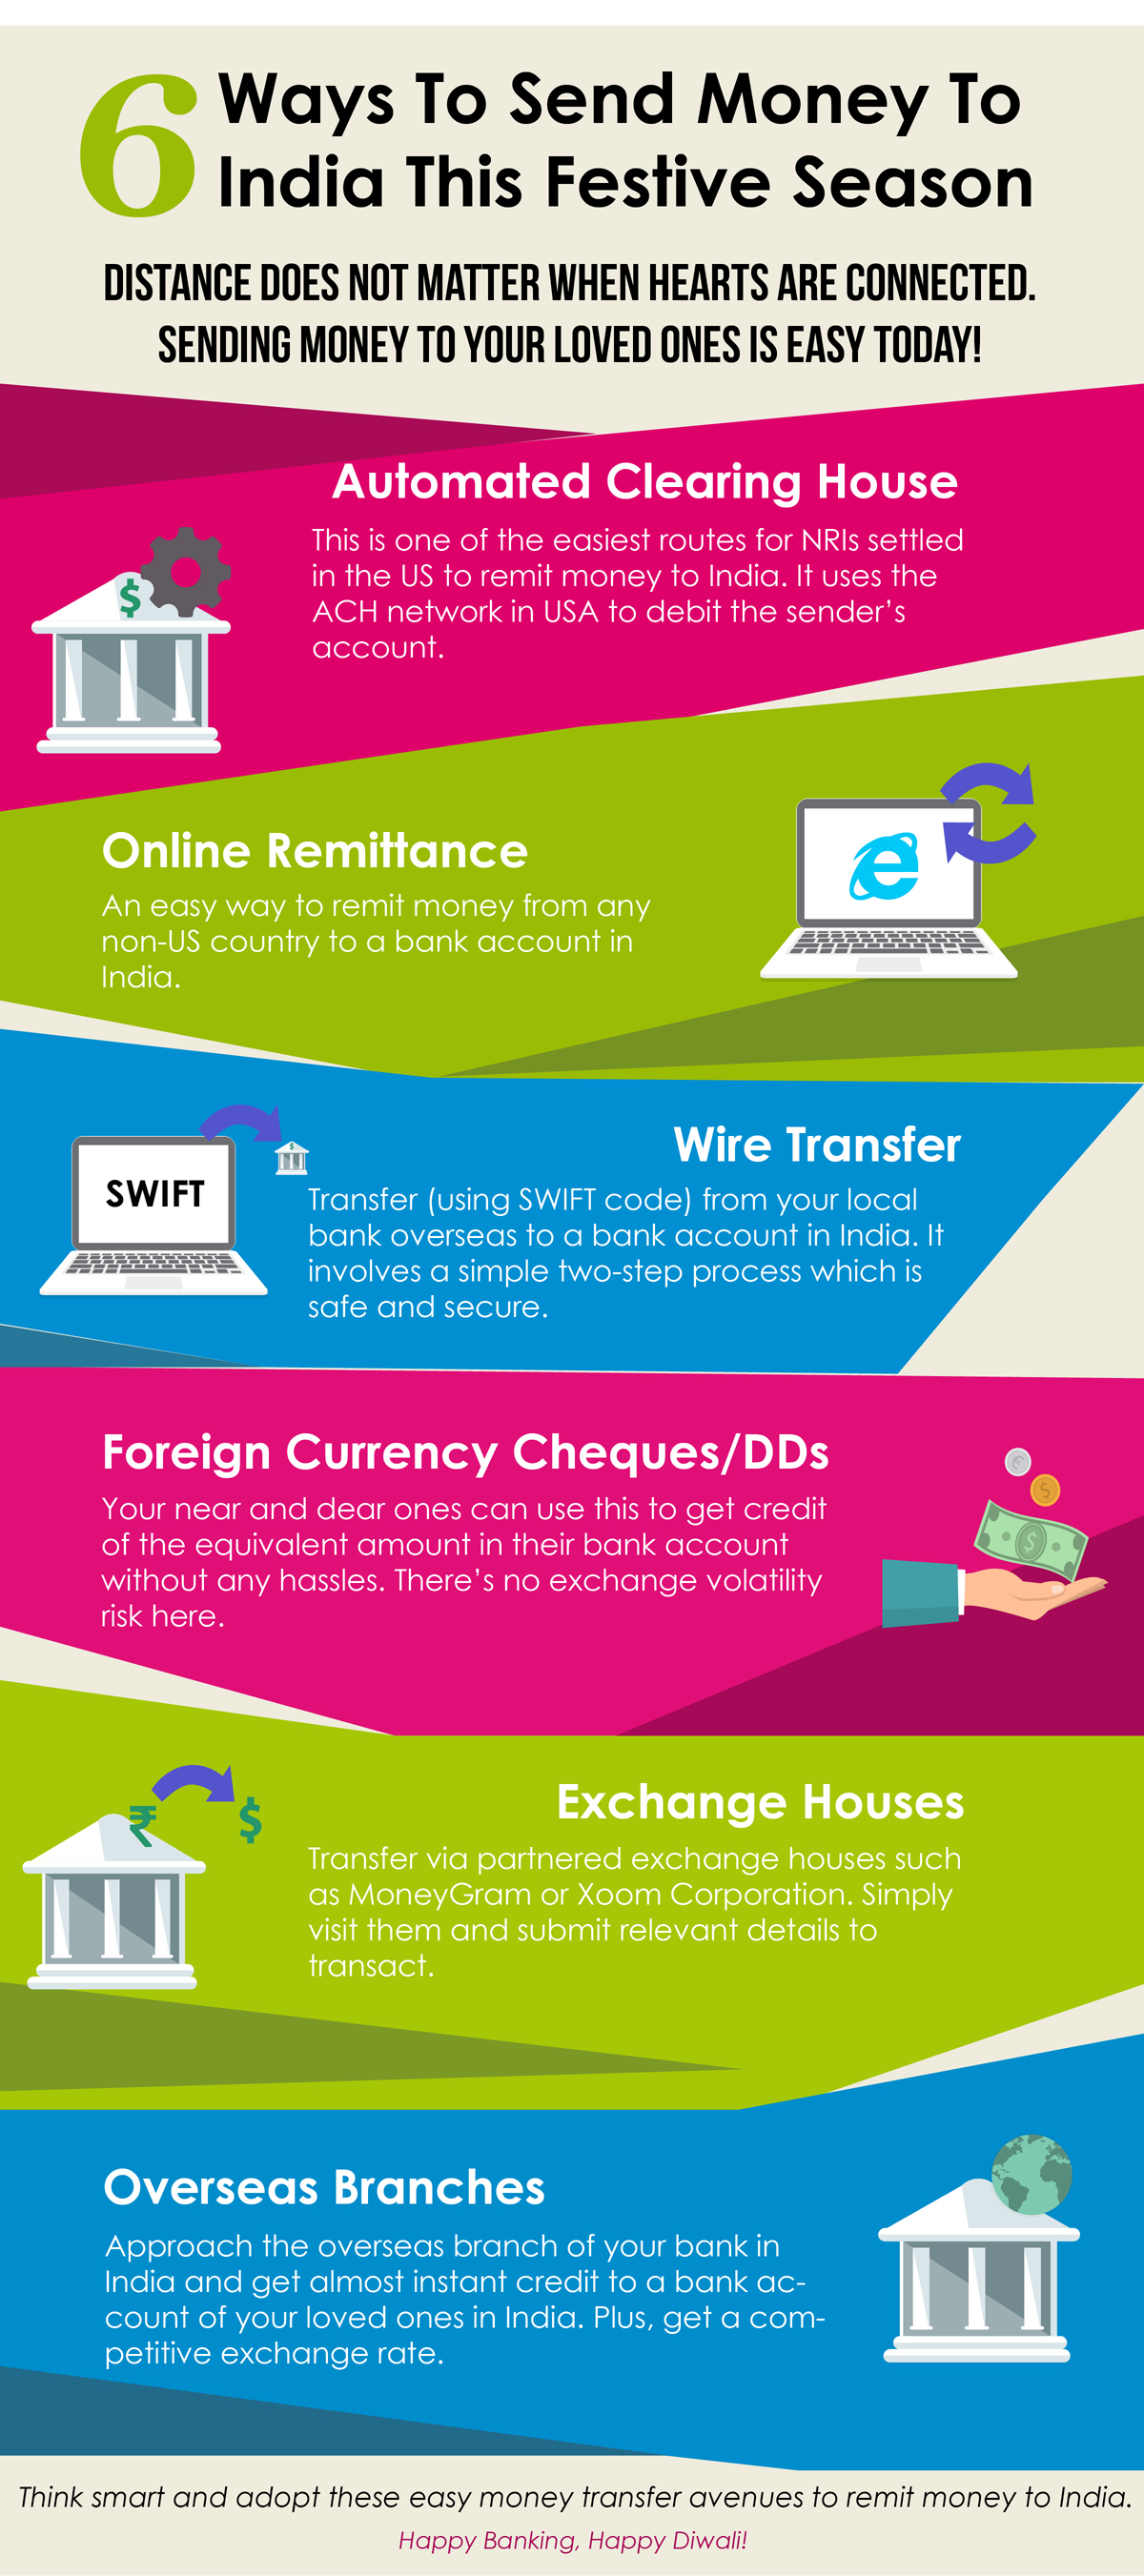 Ways to send money to India - Axis Bank